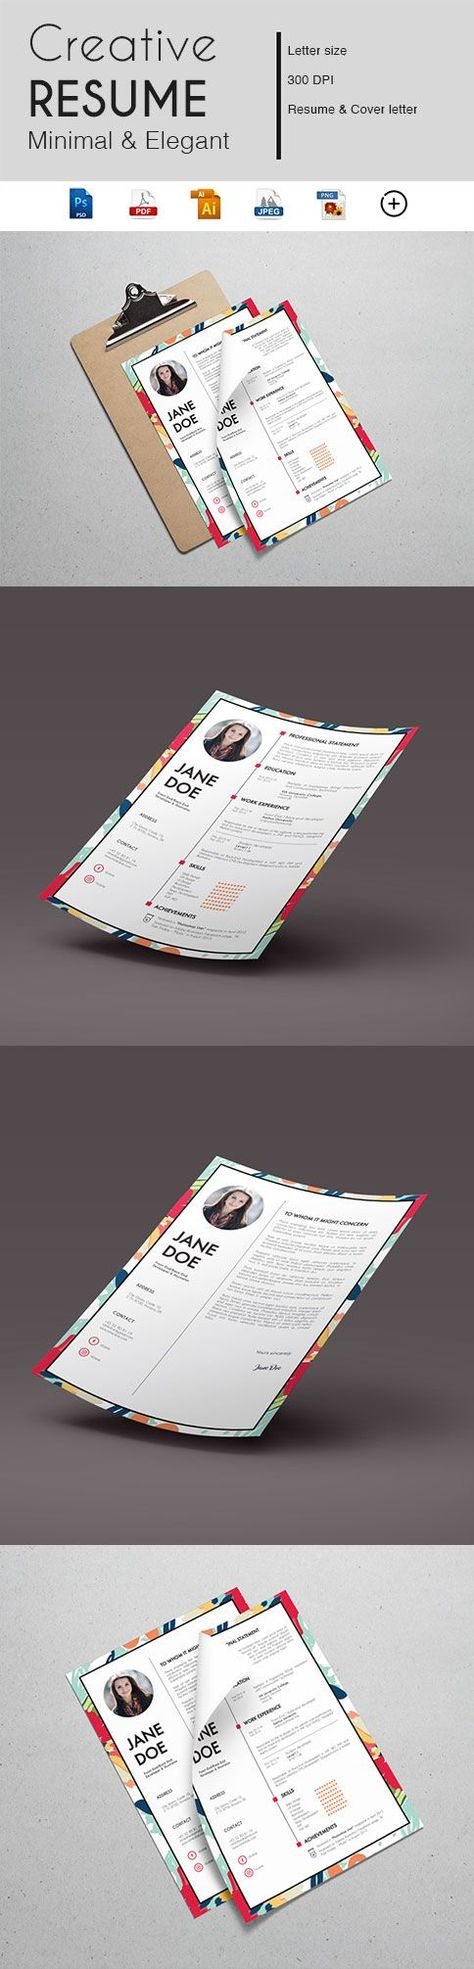 CV Template | Resume | Curriculum Vitae | Digital Print | Resume Template | CV Design | Printable Resume | Graphic Design | Custom Resume